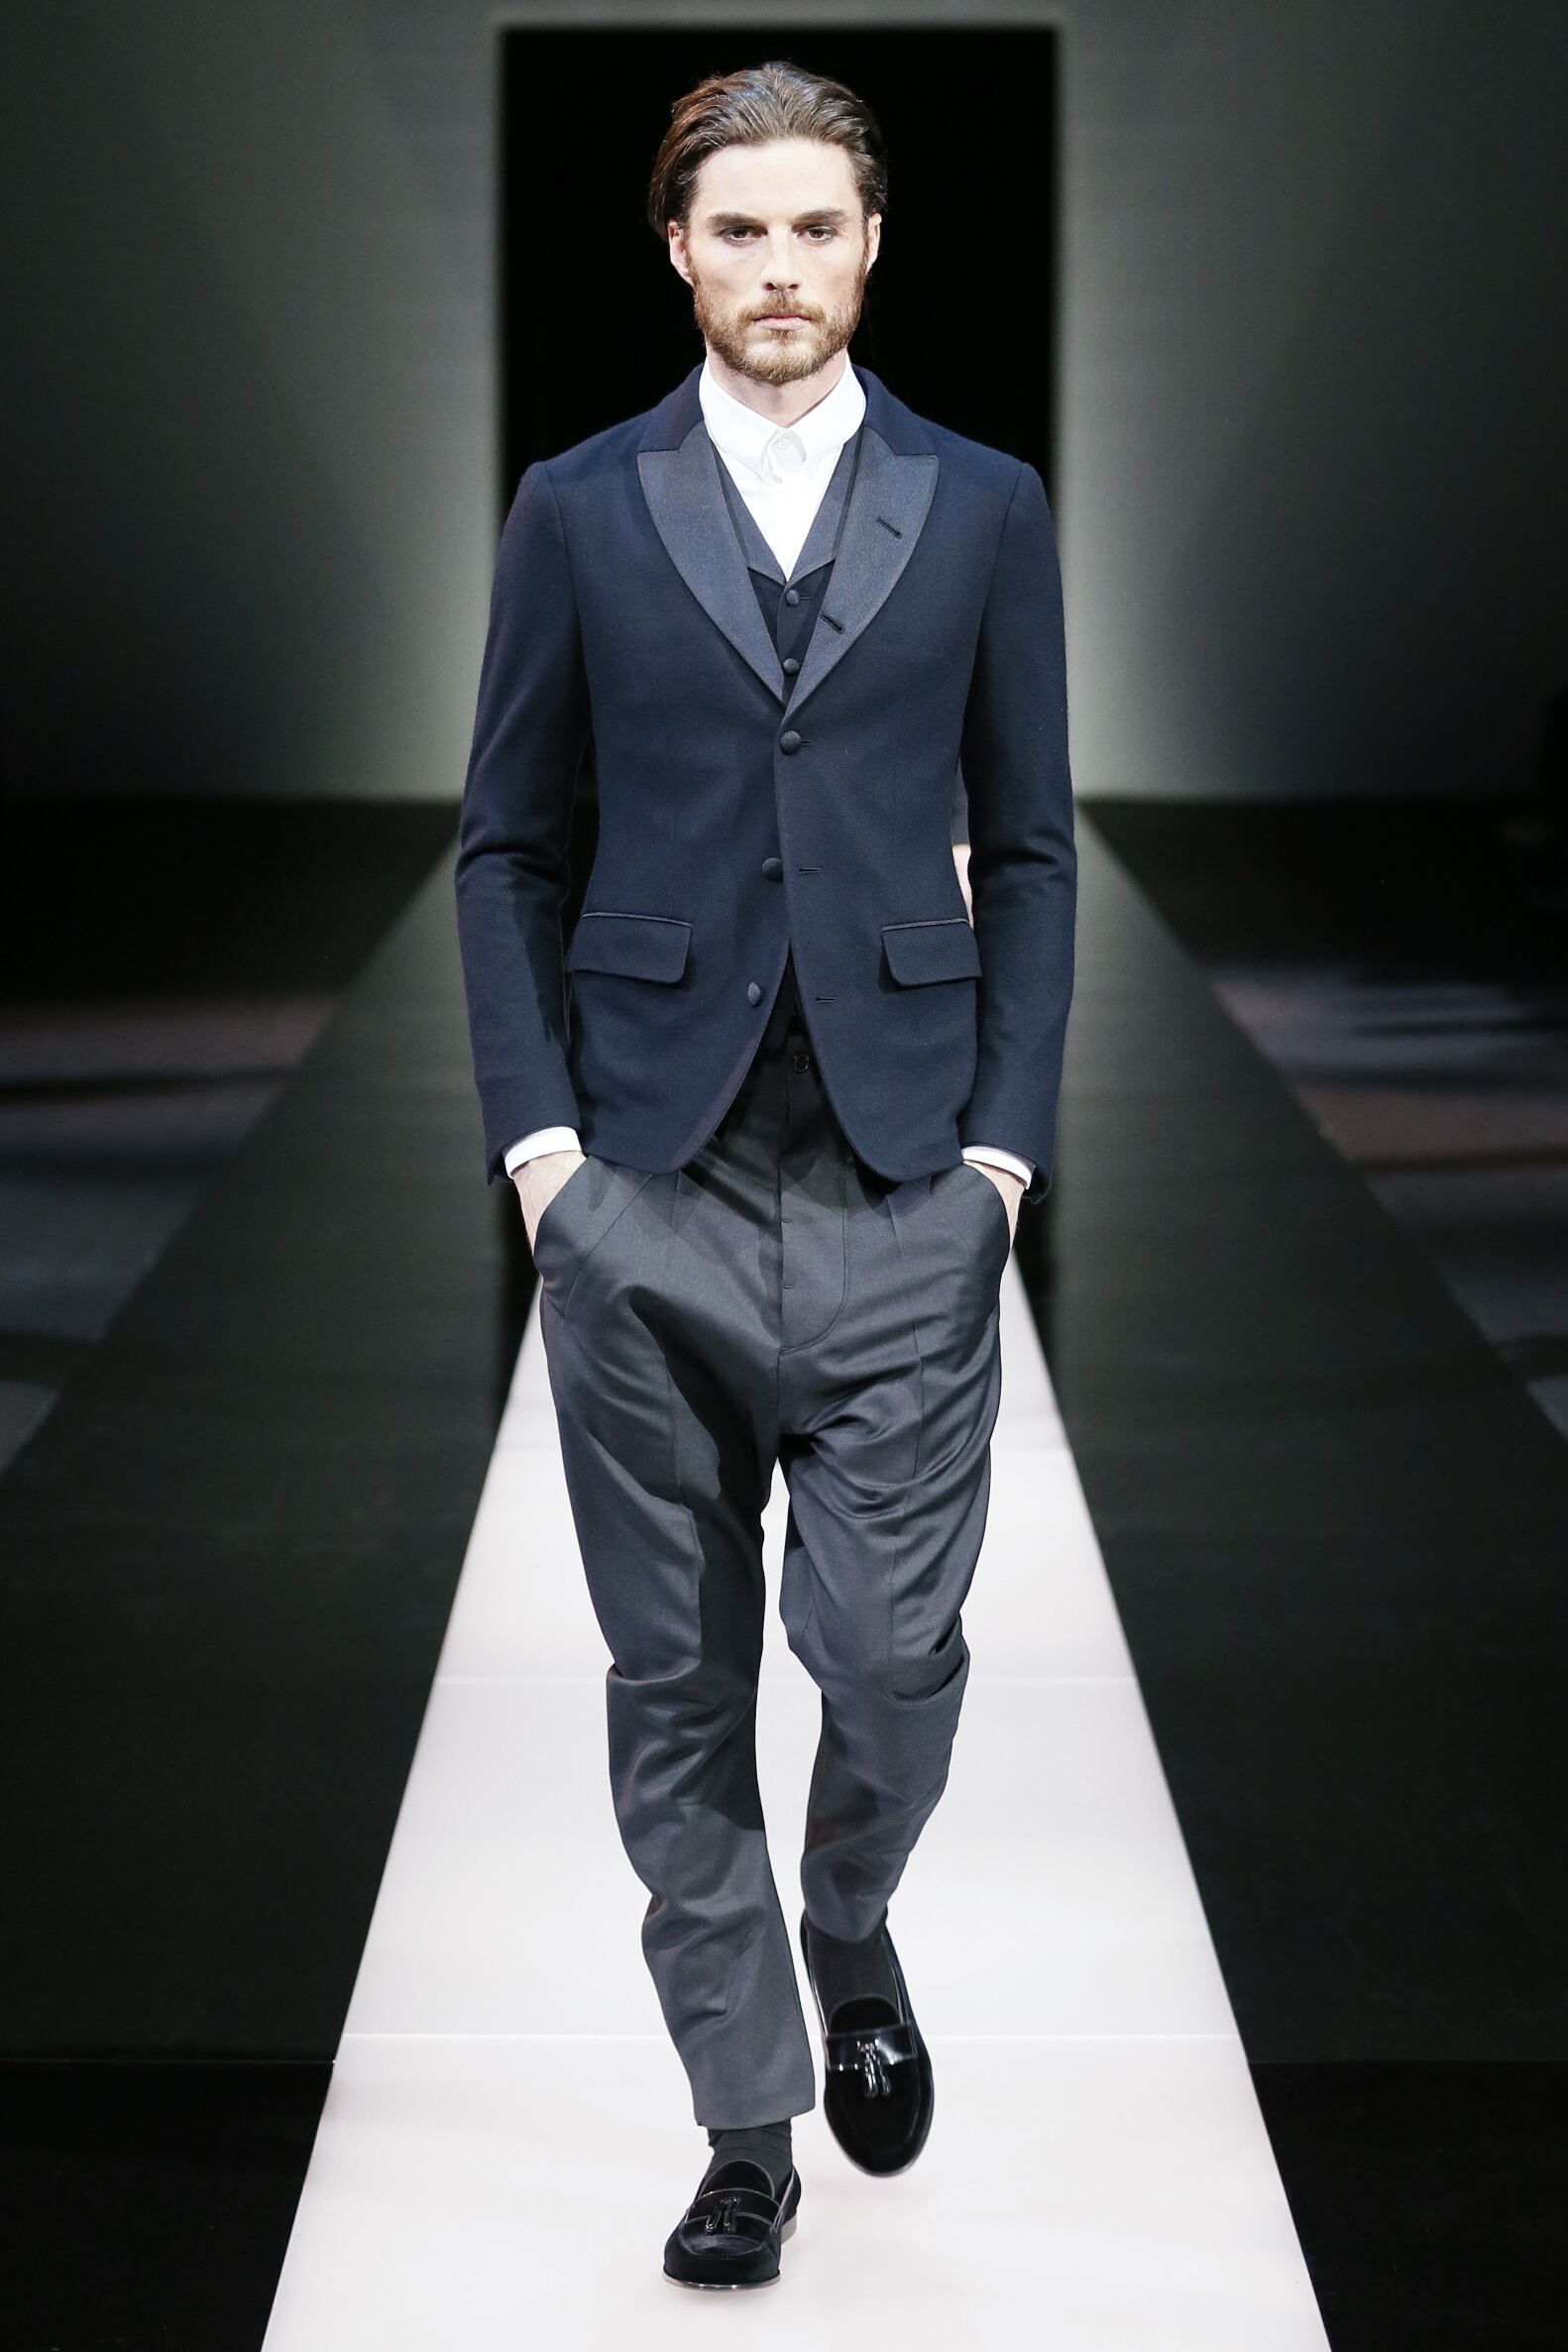 2015 16 Catwalk Giorgio Armani Fall Winter Men's Collection Milano Fashion Week